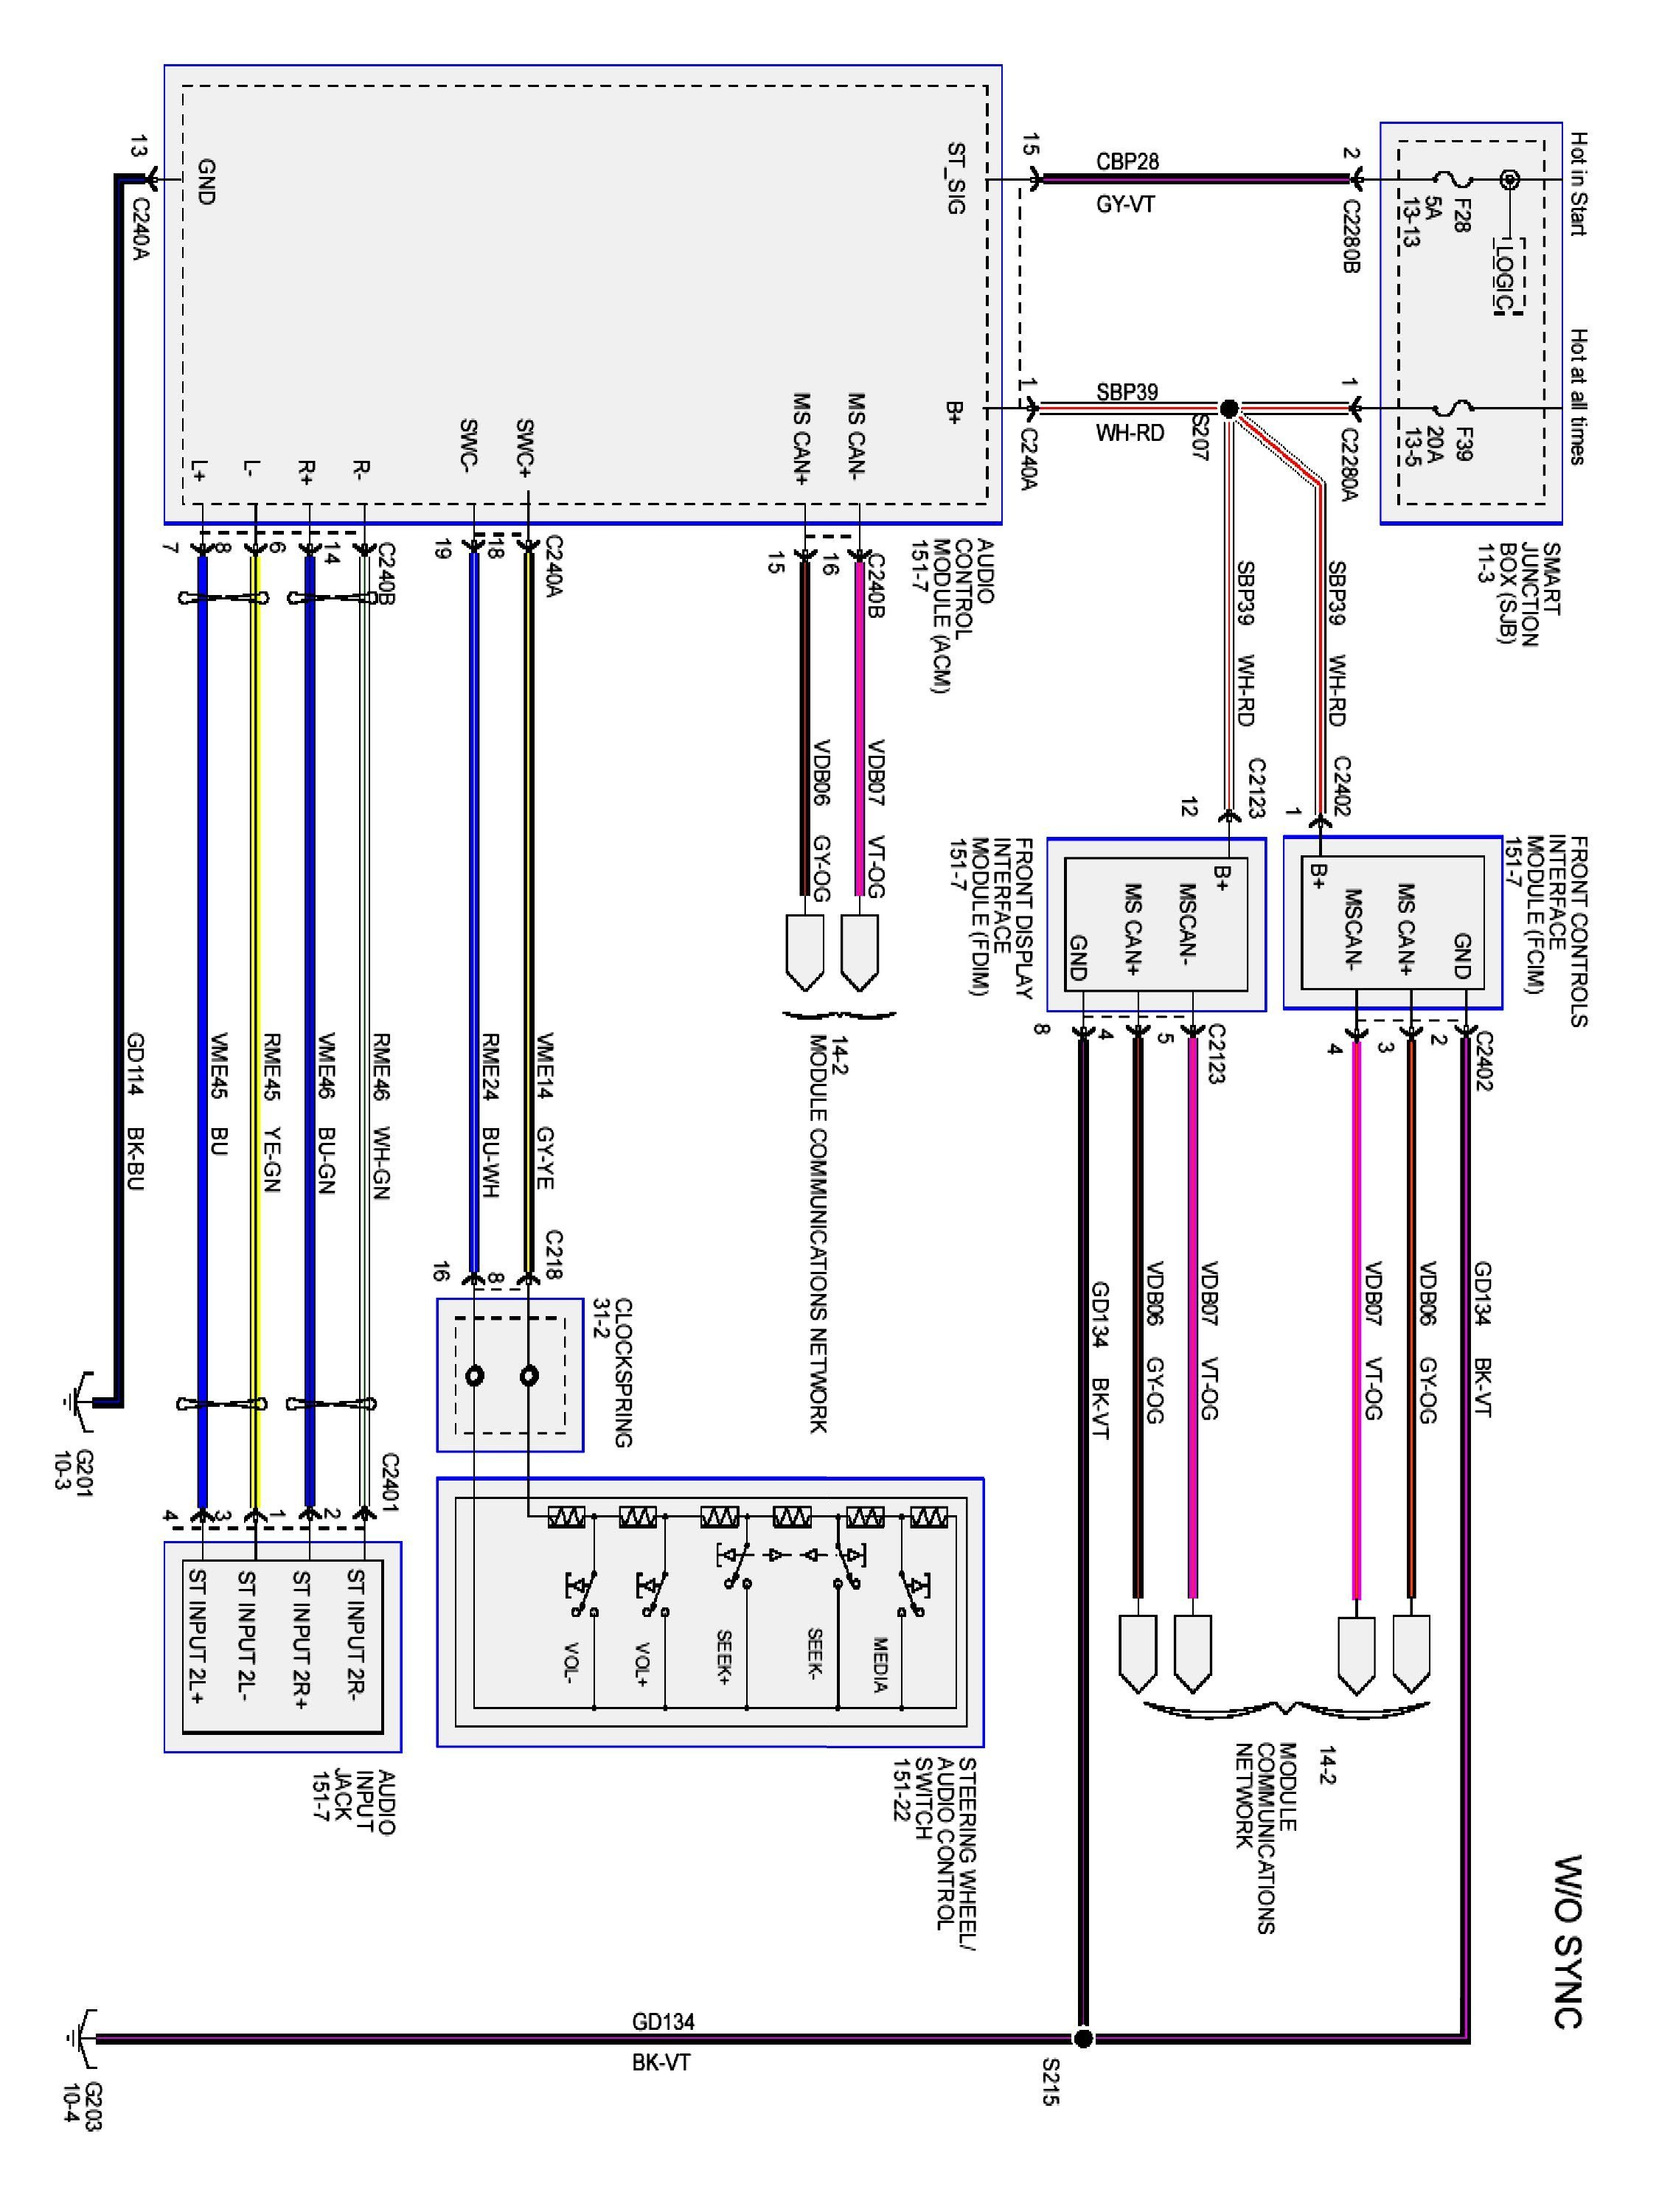 2013 Ford Explorer Radio Wiring Diagram 39 Images 2007 2010 07 16 221430 2001 And Schematic